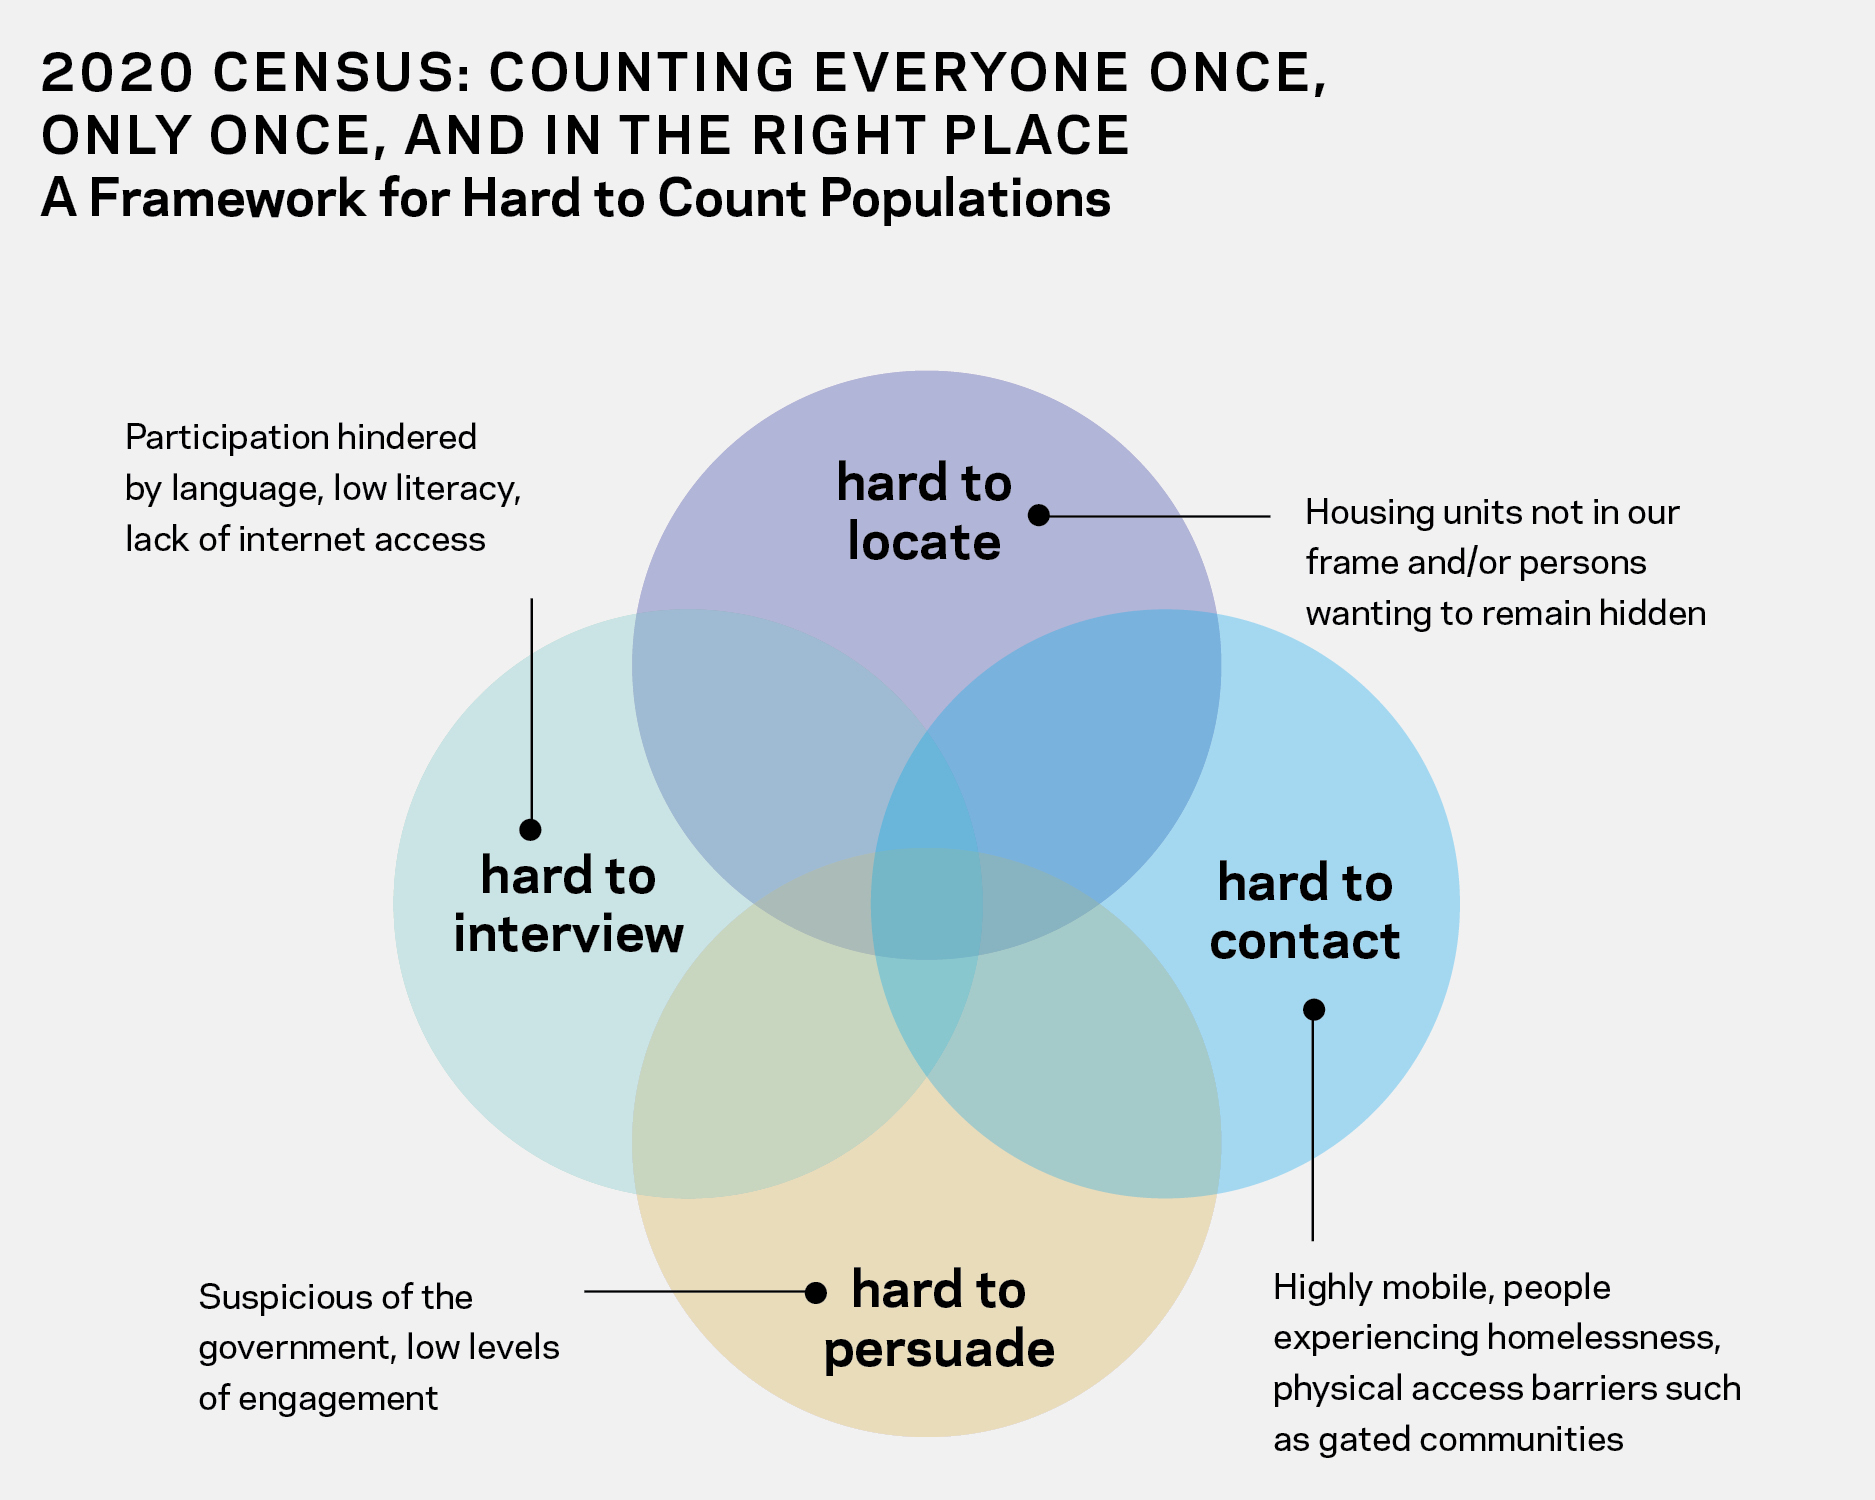 Can Cities Save the Census? A Local Framework for Our